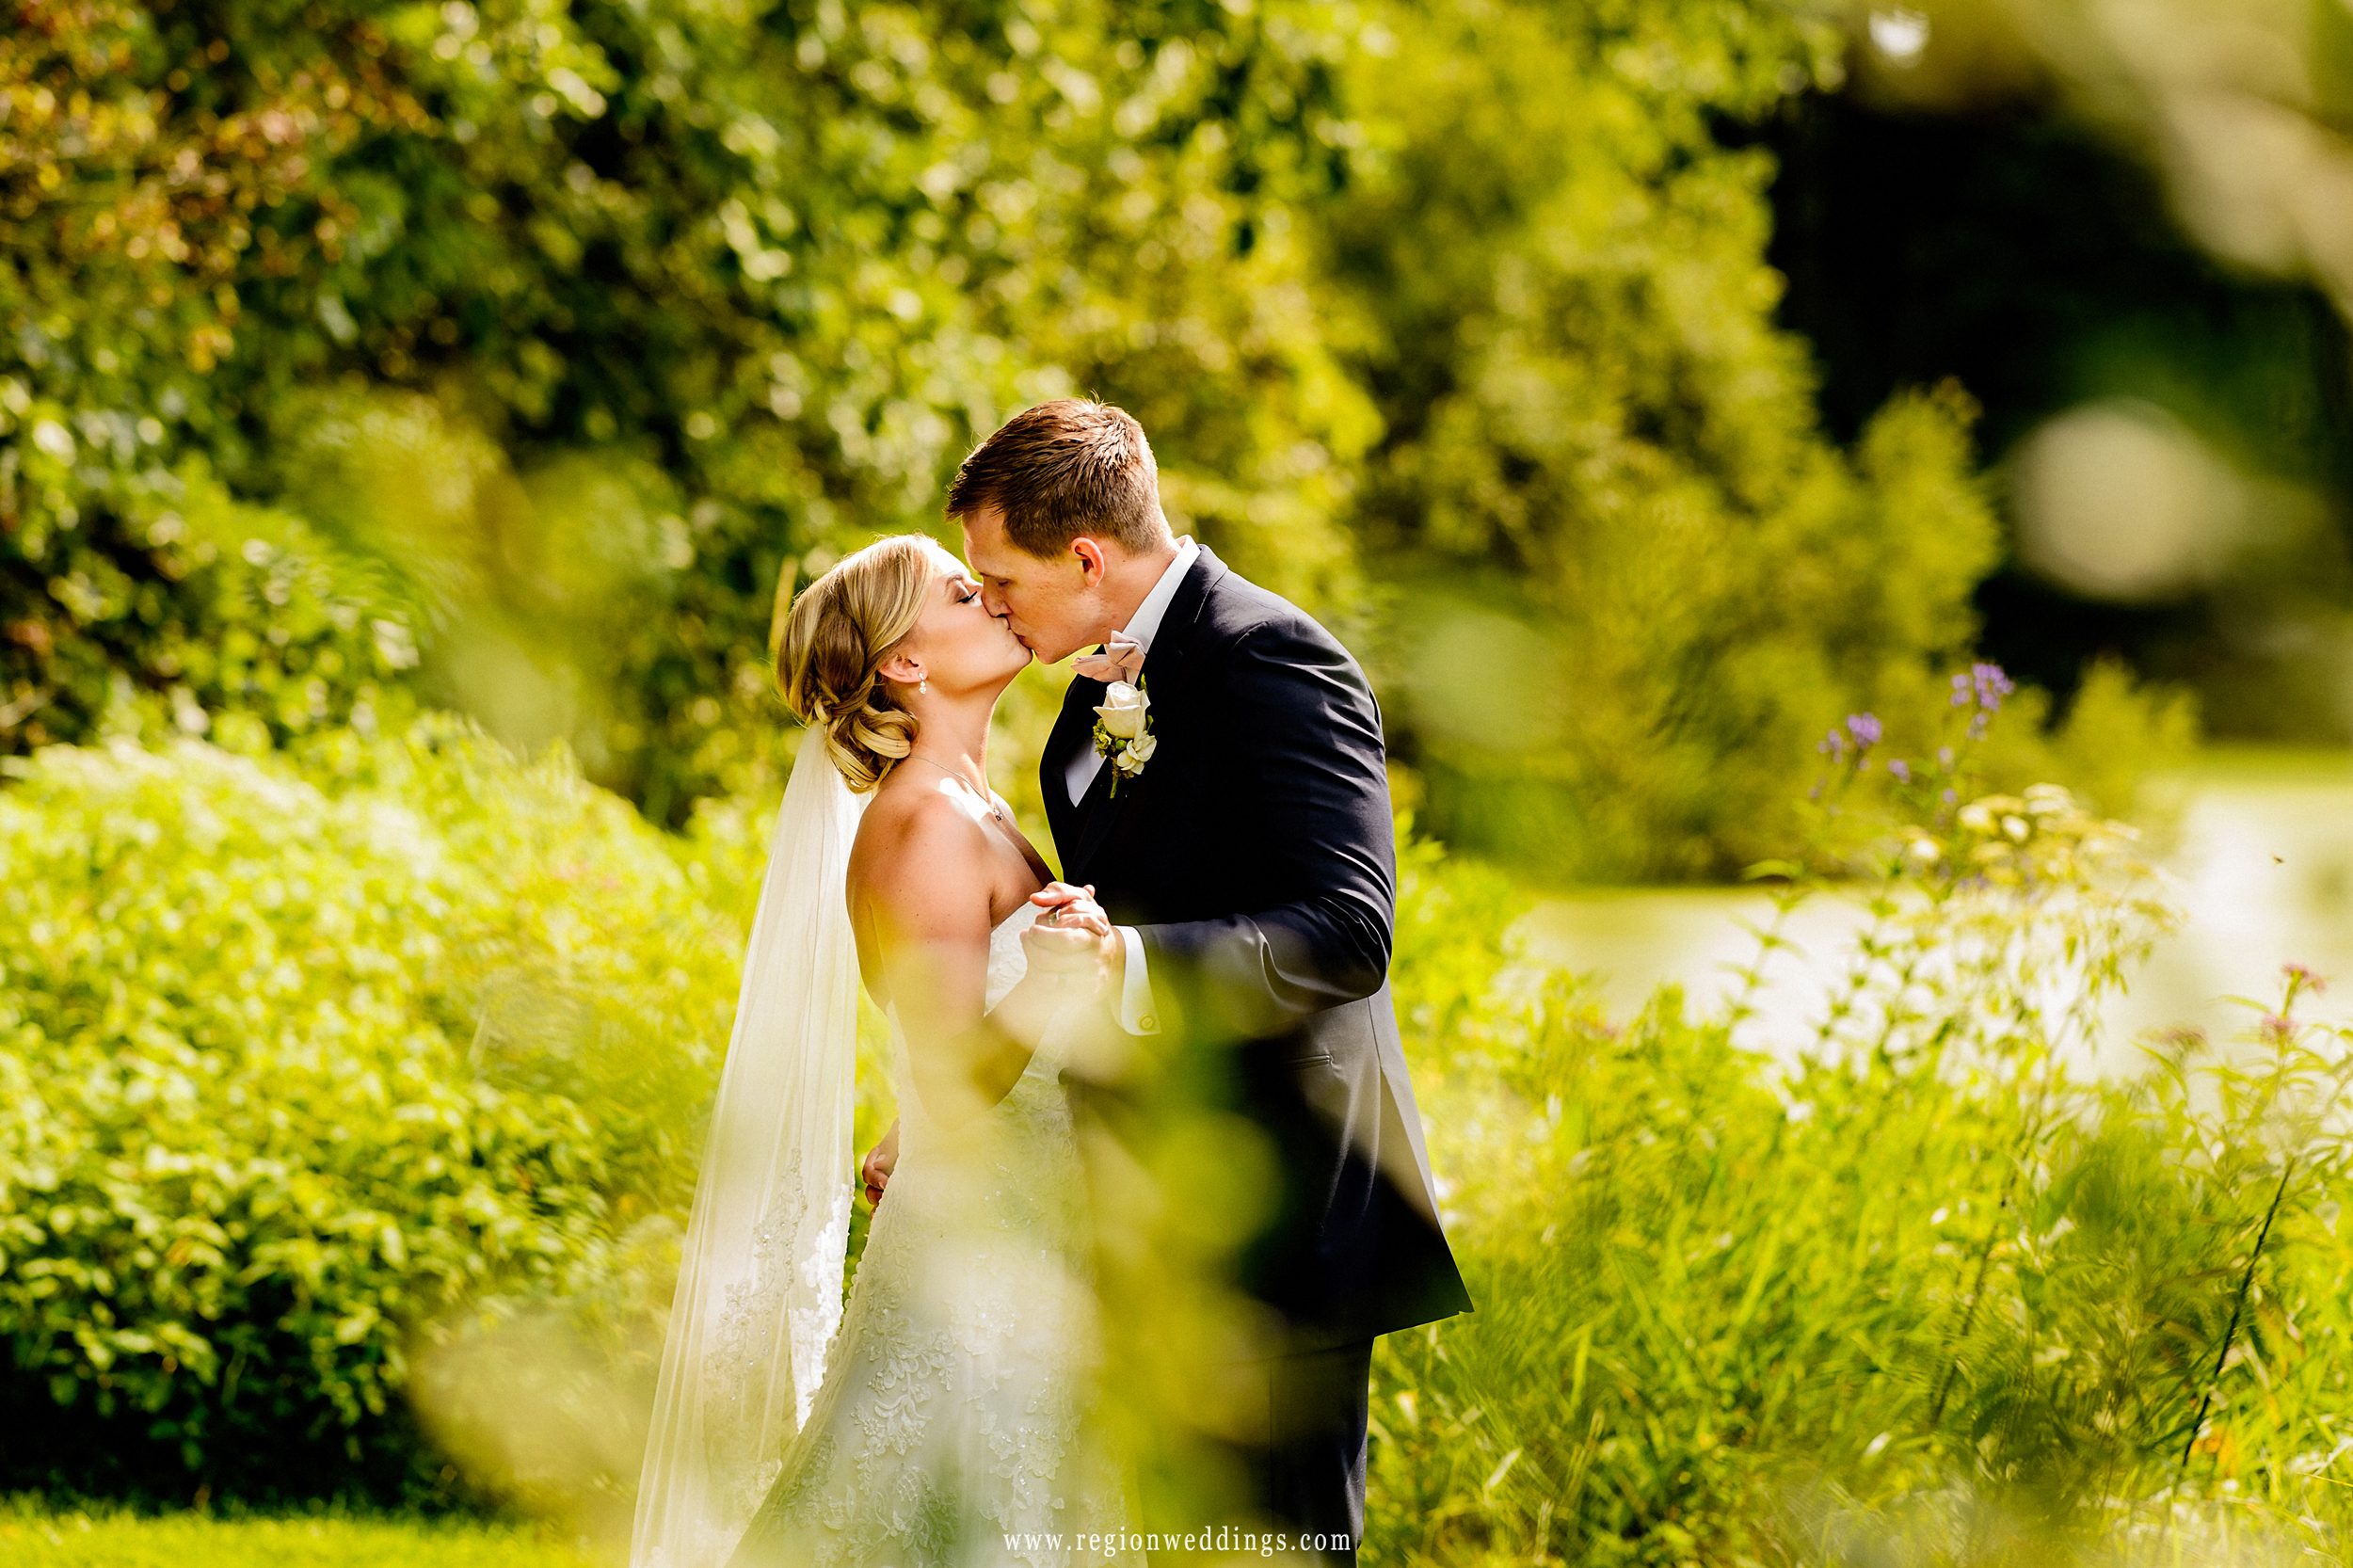 Bride and groom share in a kiss amidst the nature of Taltree Arboretum.